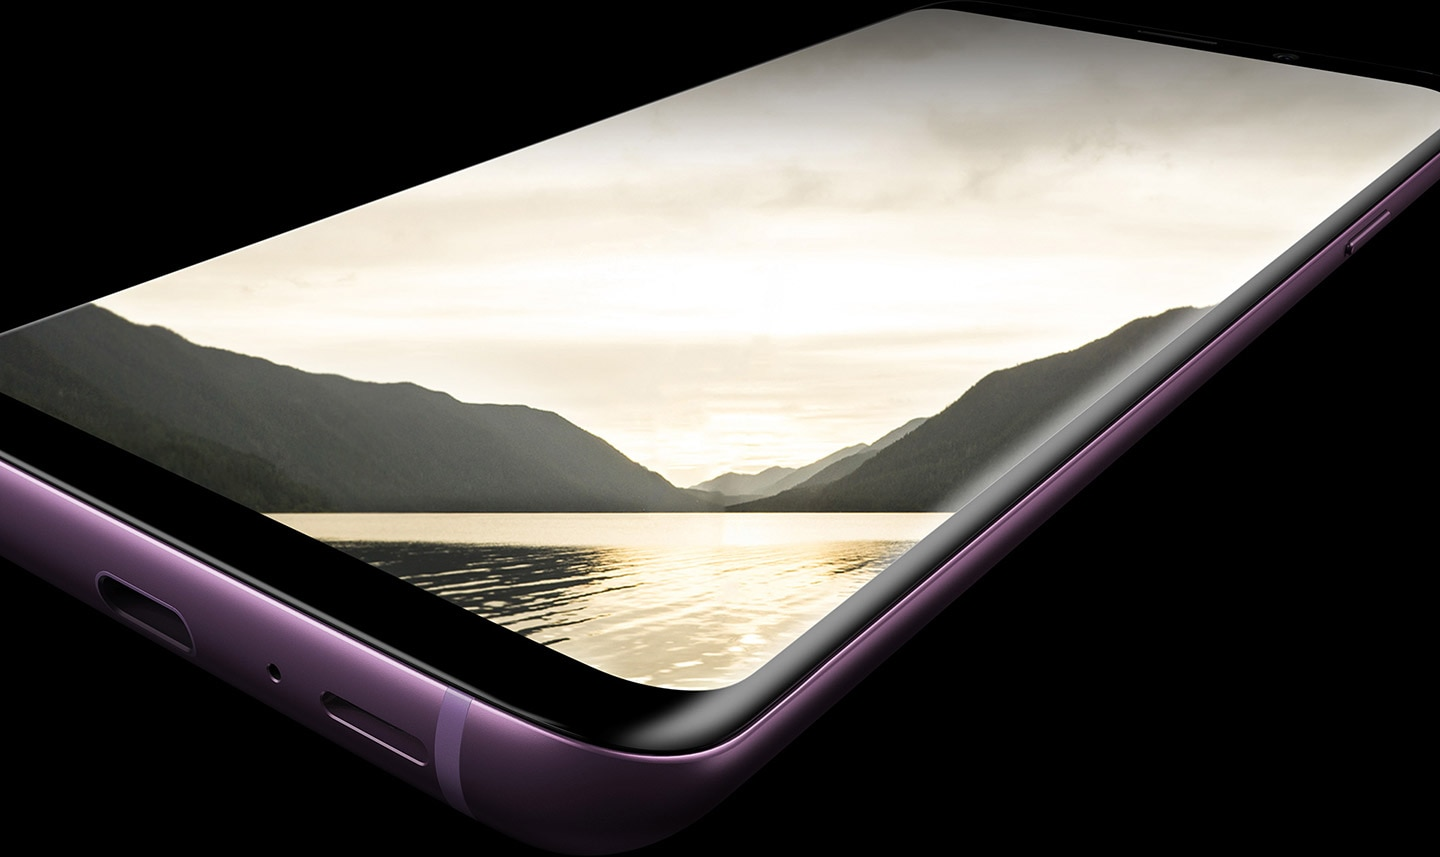 Galaxy S9+ shown at an angle that highlights the Infinity Display